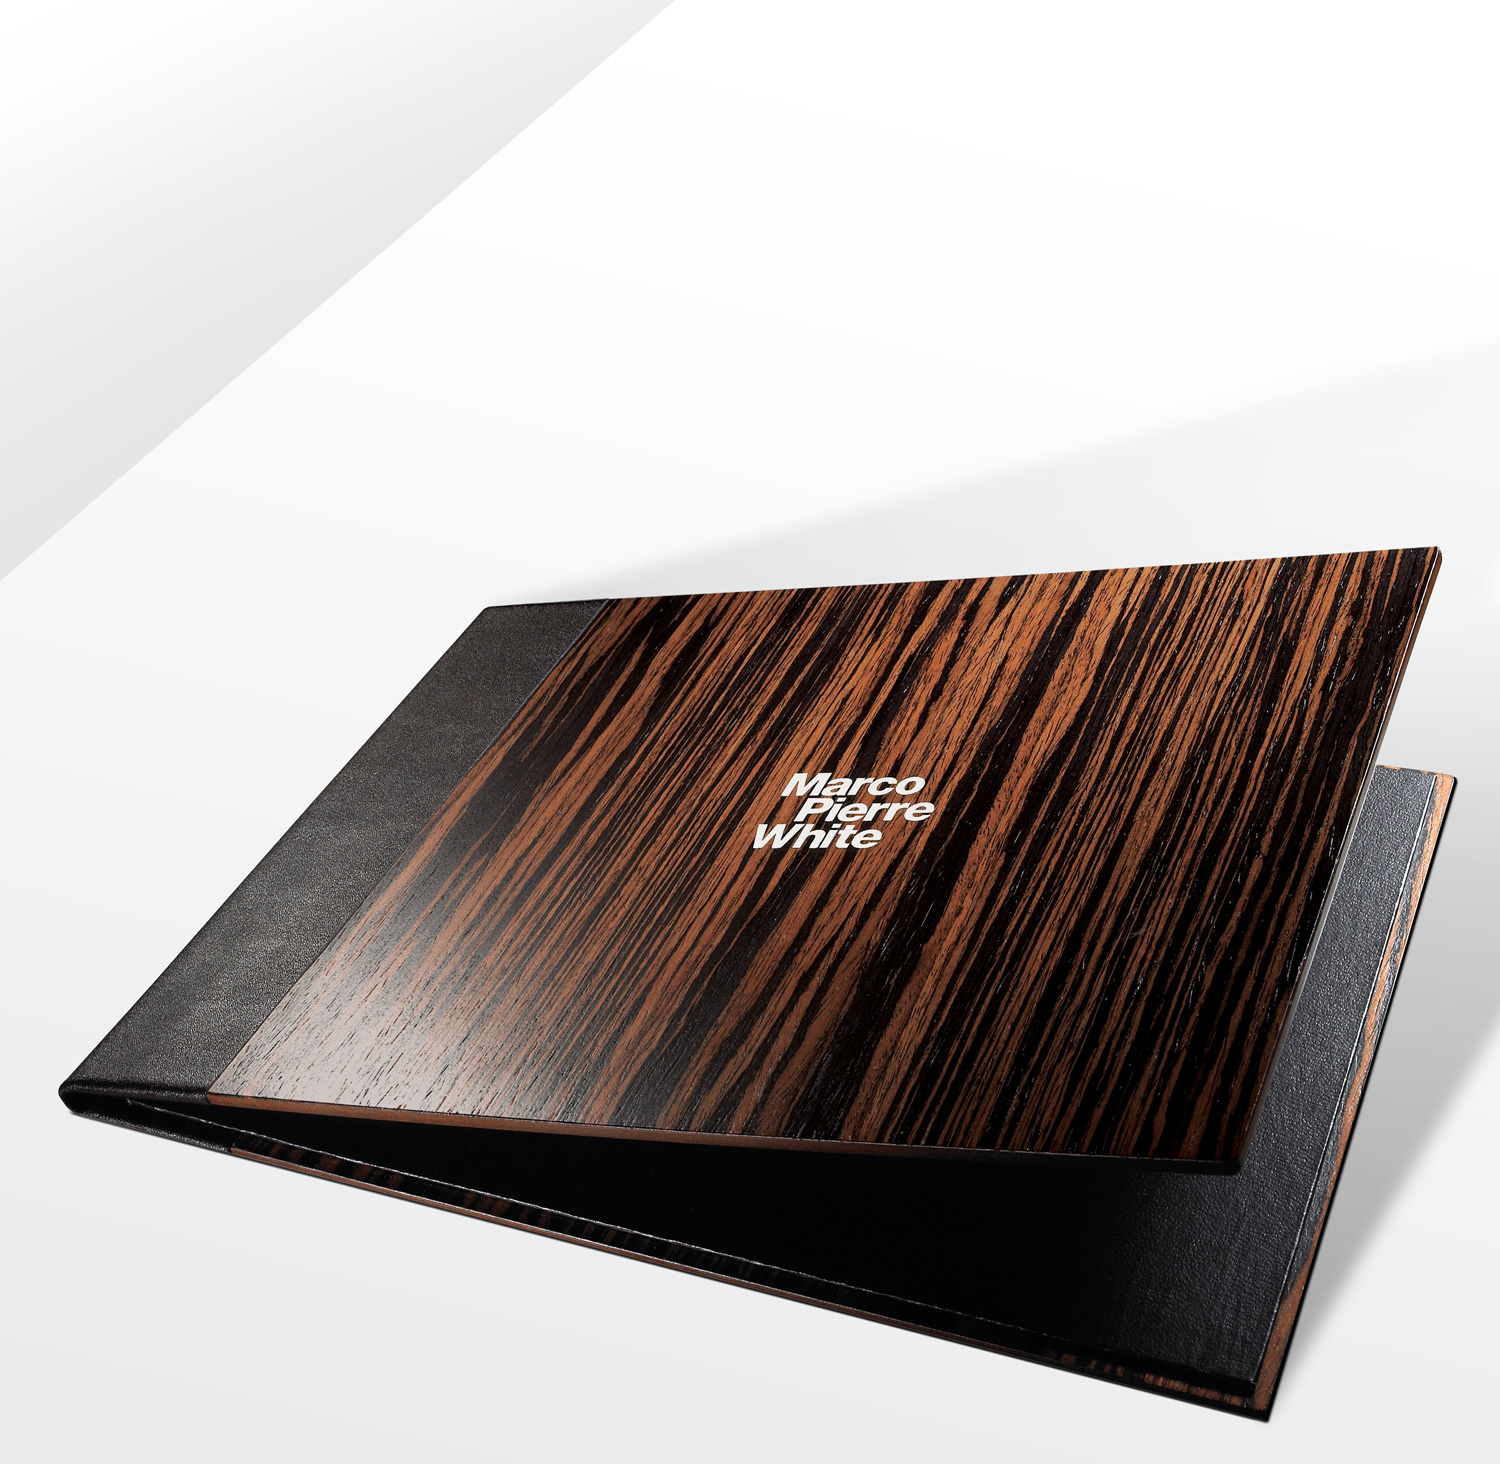 Progress Packaging MarcoPiereWhite Luxury Menu Drinks Closure Wood Leather